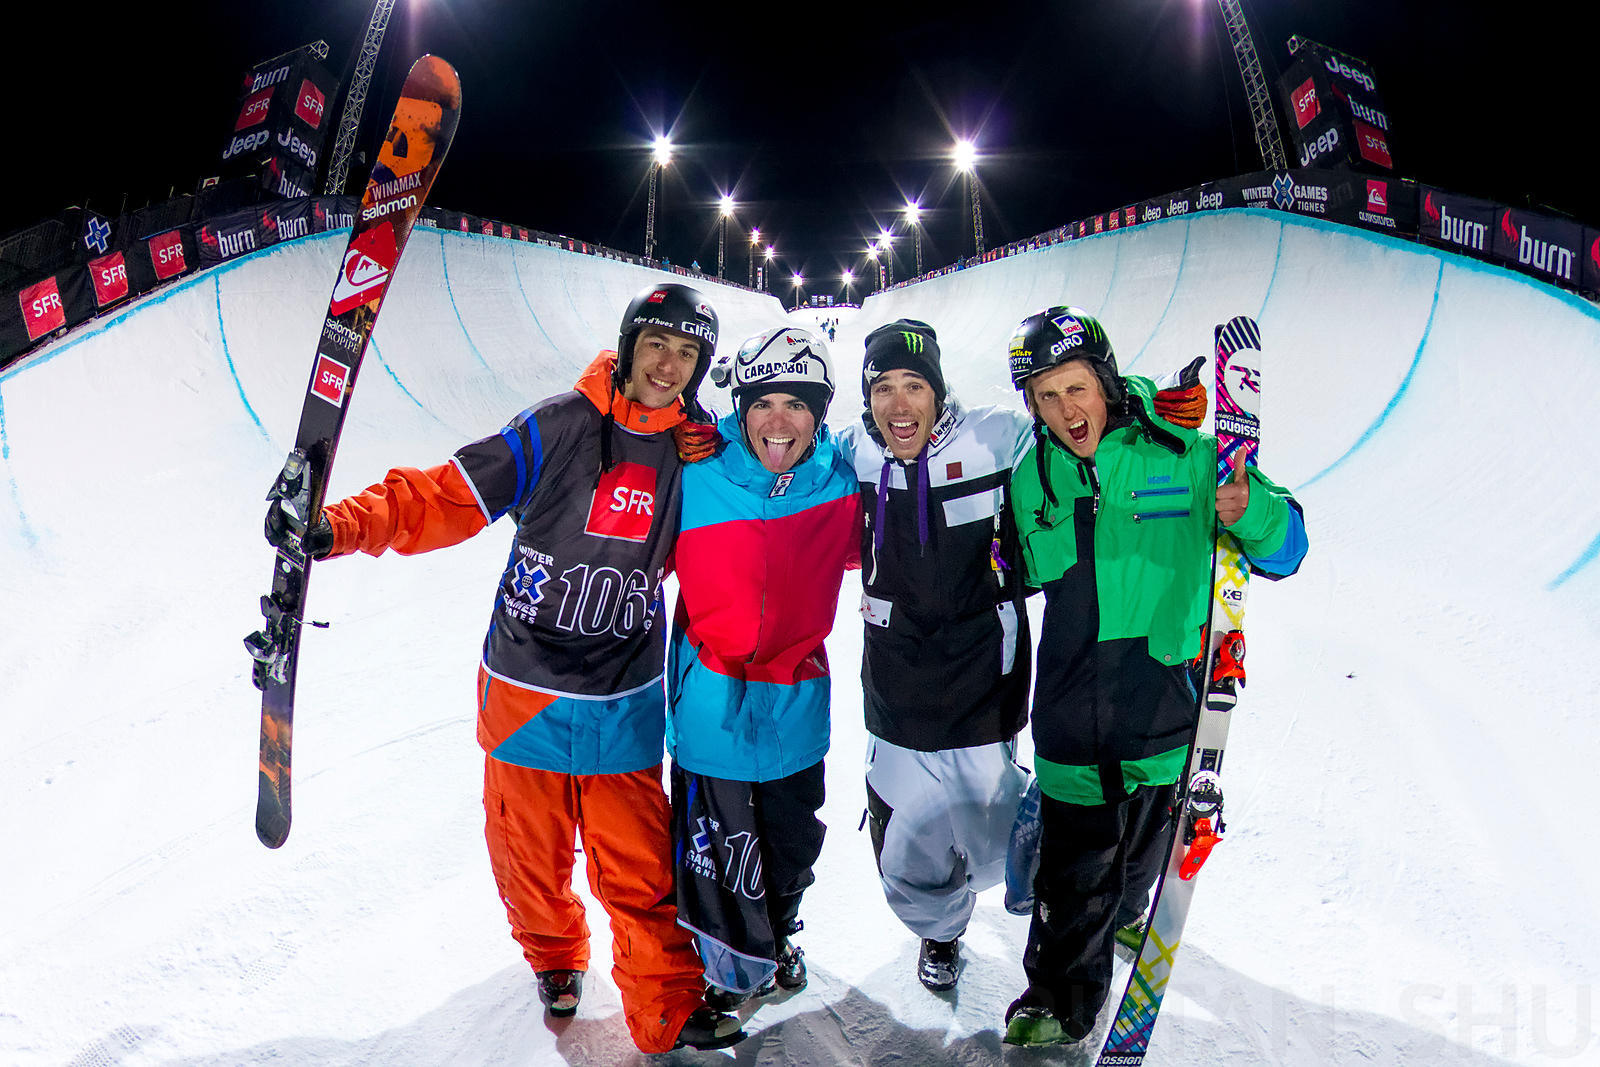 This one was shot at the end of the Superpipe Winter X Games Europe final, following Thomas Krief Silver Medal. March 16th, 2...